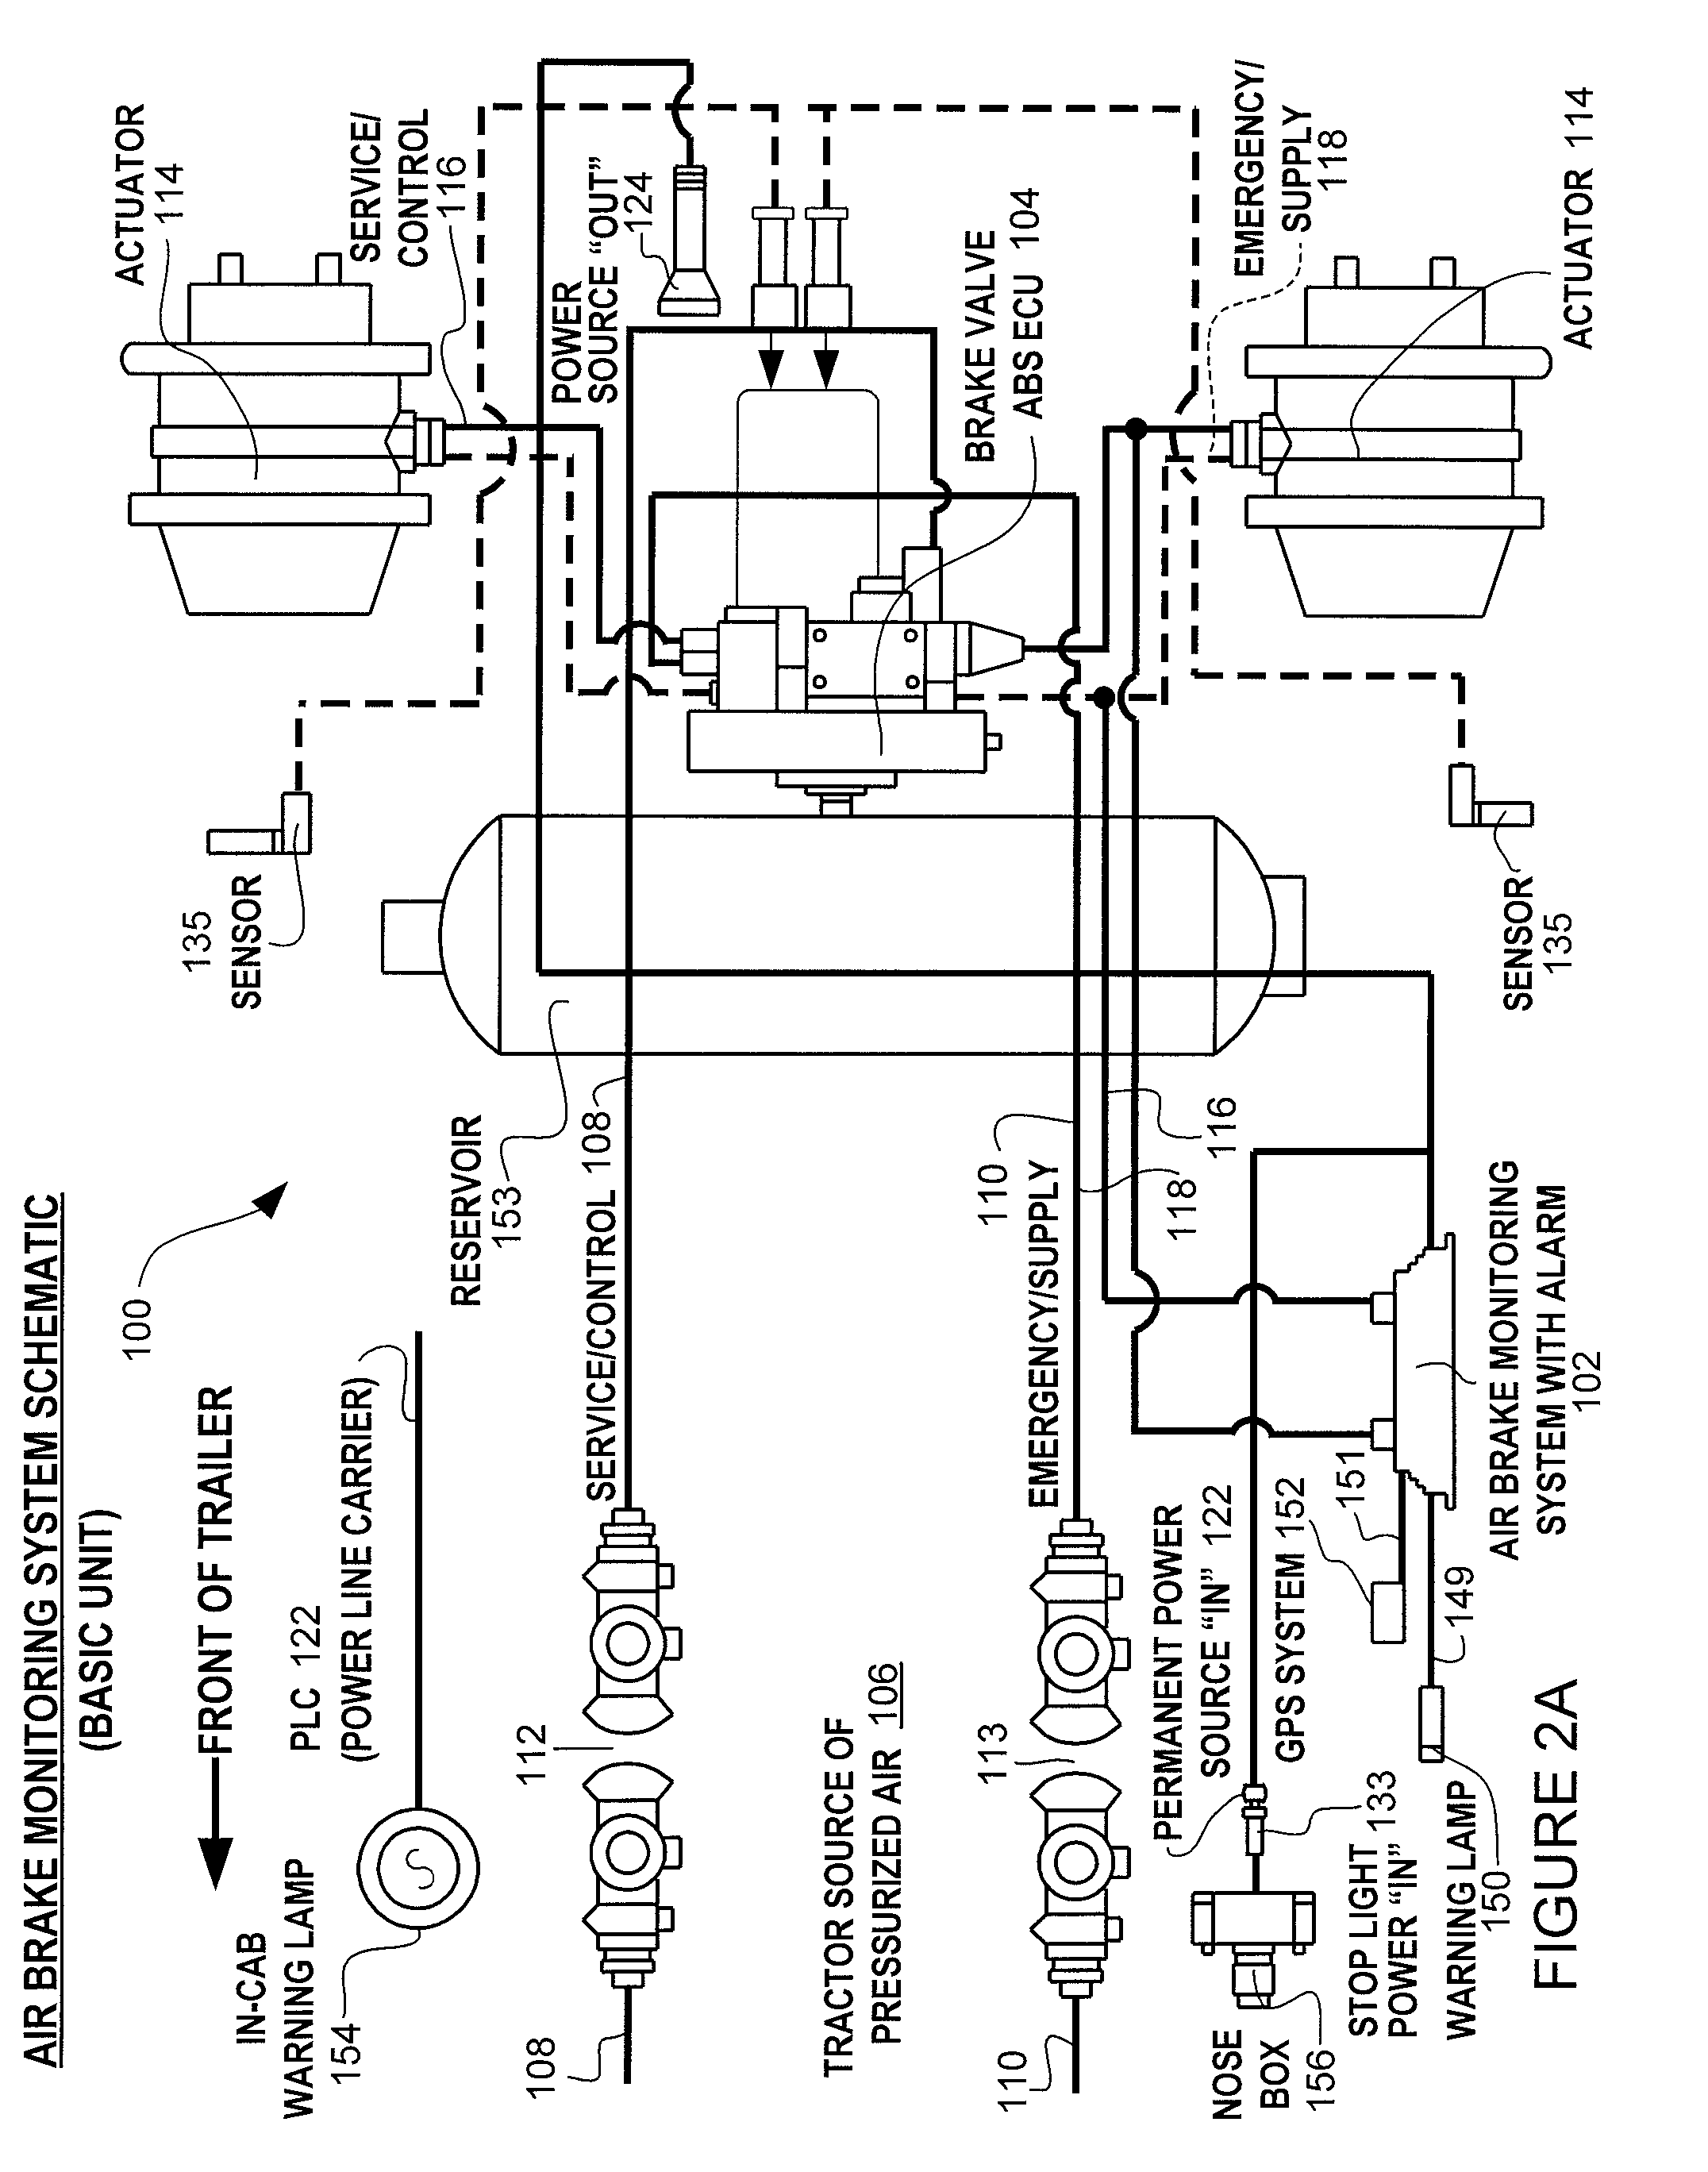 Tractor Trailer Air Brake System Diagram Wiring And Fuse Box Ford 3910 Electrical Diesel 252530215613 In Addition Repairguidecontent Furthermore 191 Additionally New Holland Workshop Repair Service Manual